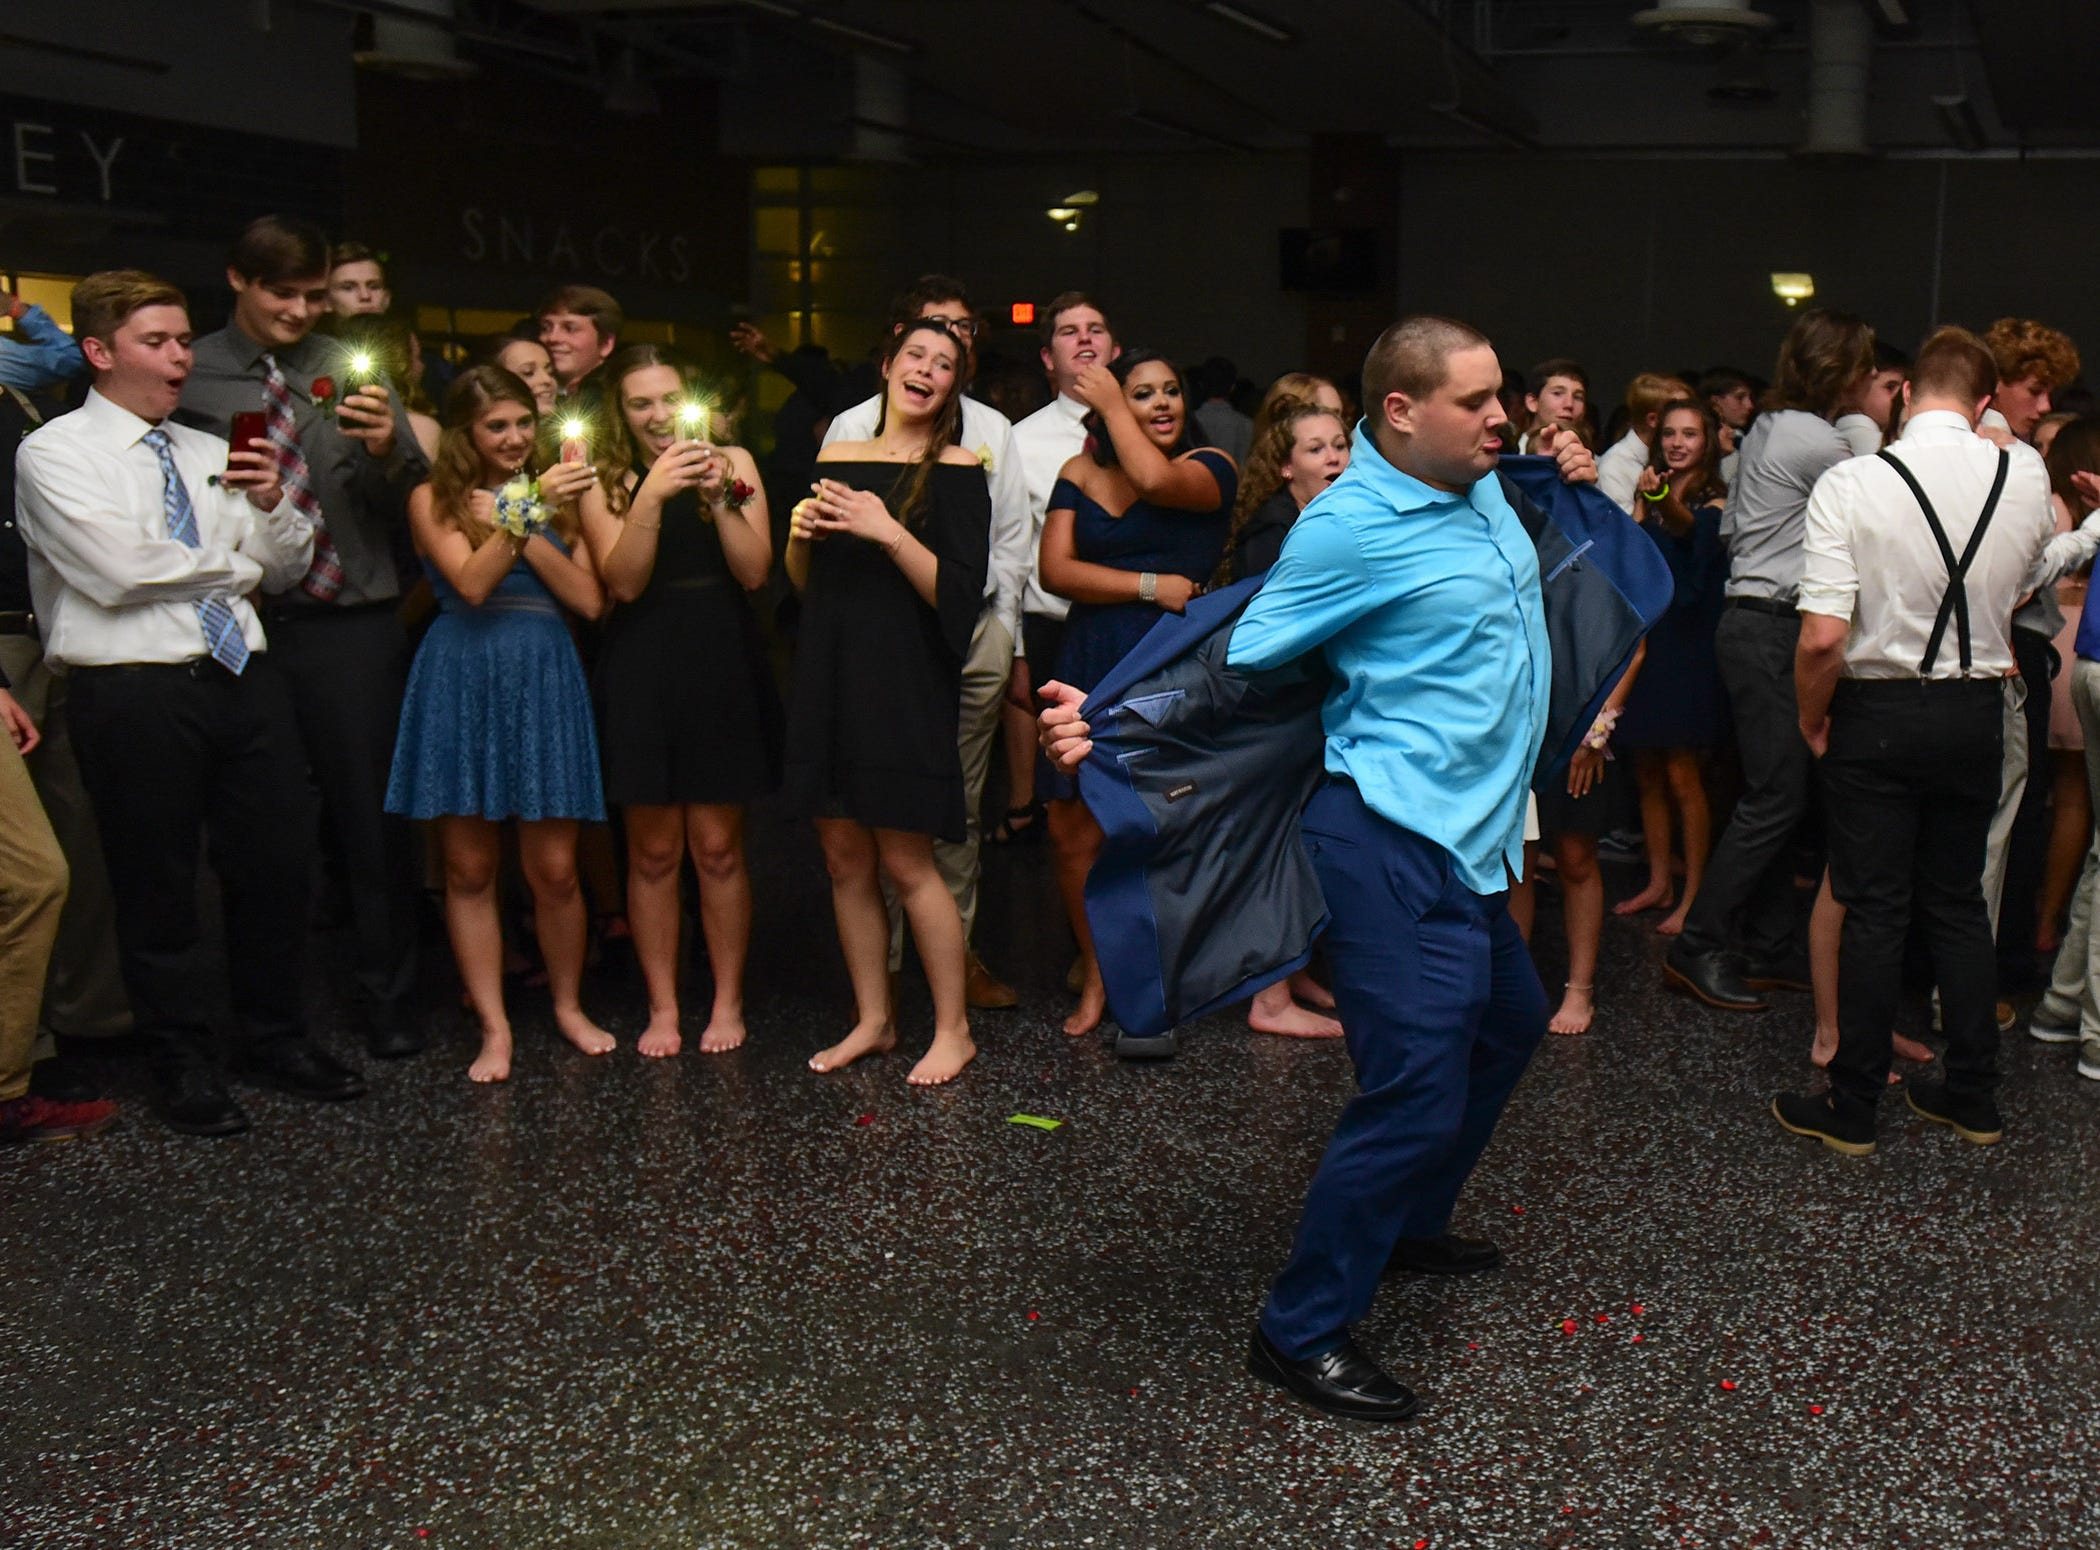 Keith Adams struts his stuff at James M. Bennett High School Homecoming Dance Saturday night at the school in Salisbury. 780 youth attended the annual dance.